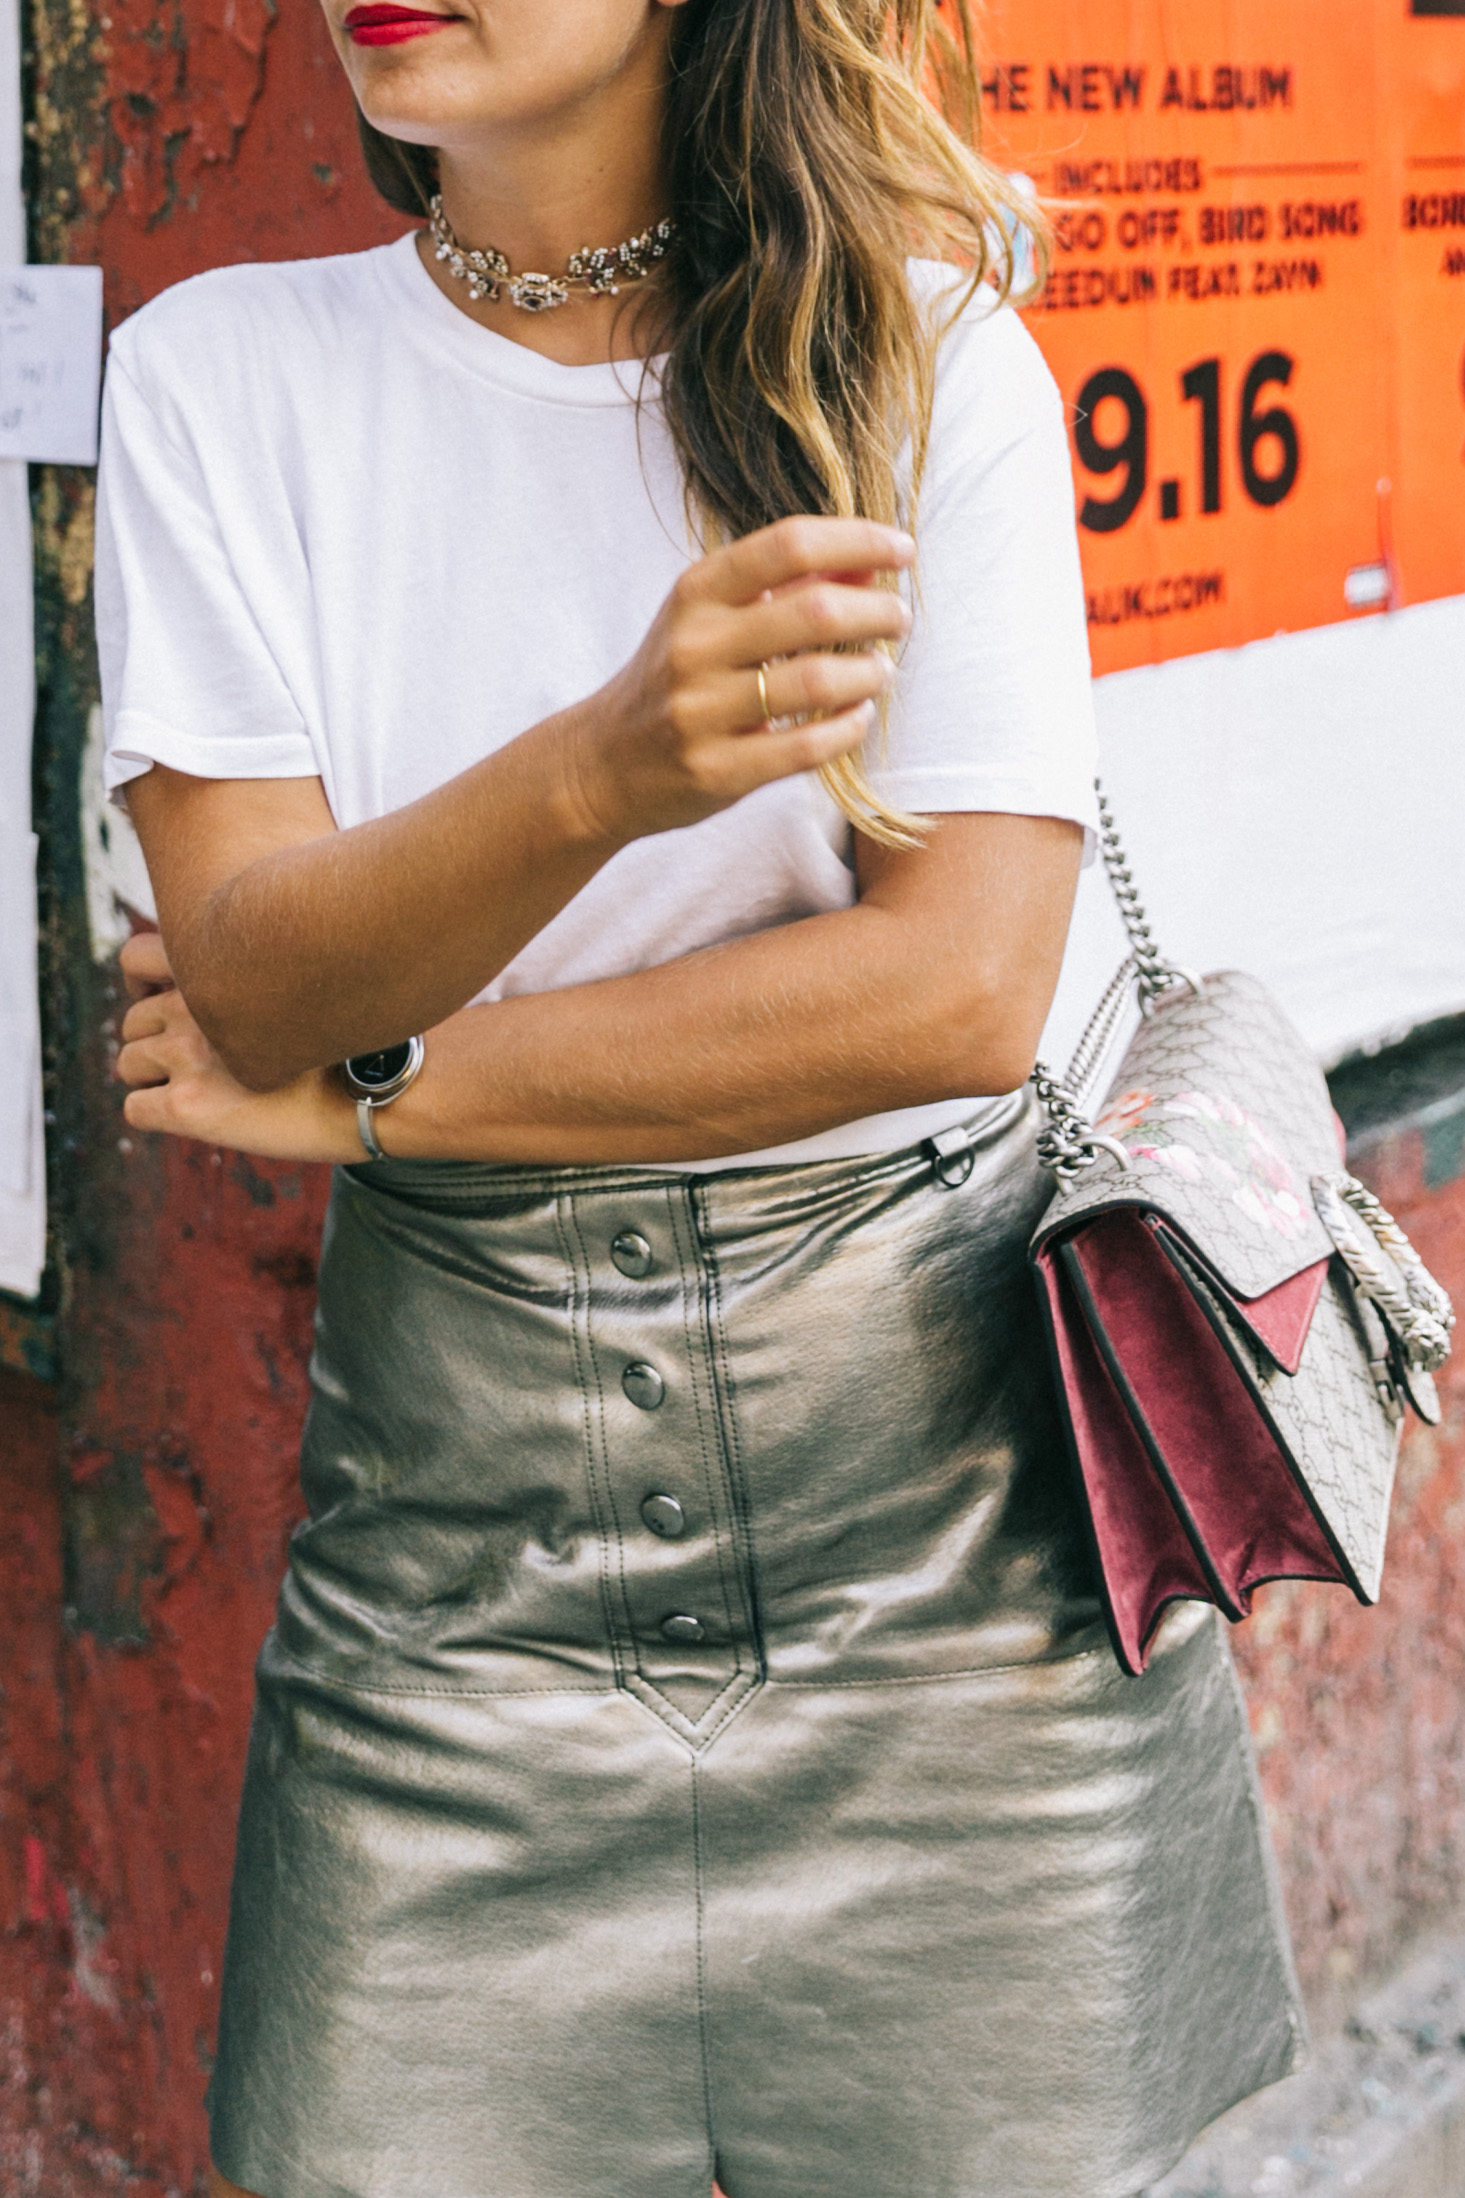 nyfw-new_york_fashion_week_ss17-street_style-outfit-collage_vintage-metallic_leather_skirt-gucci_bag-soludos_espadriles-52